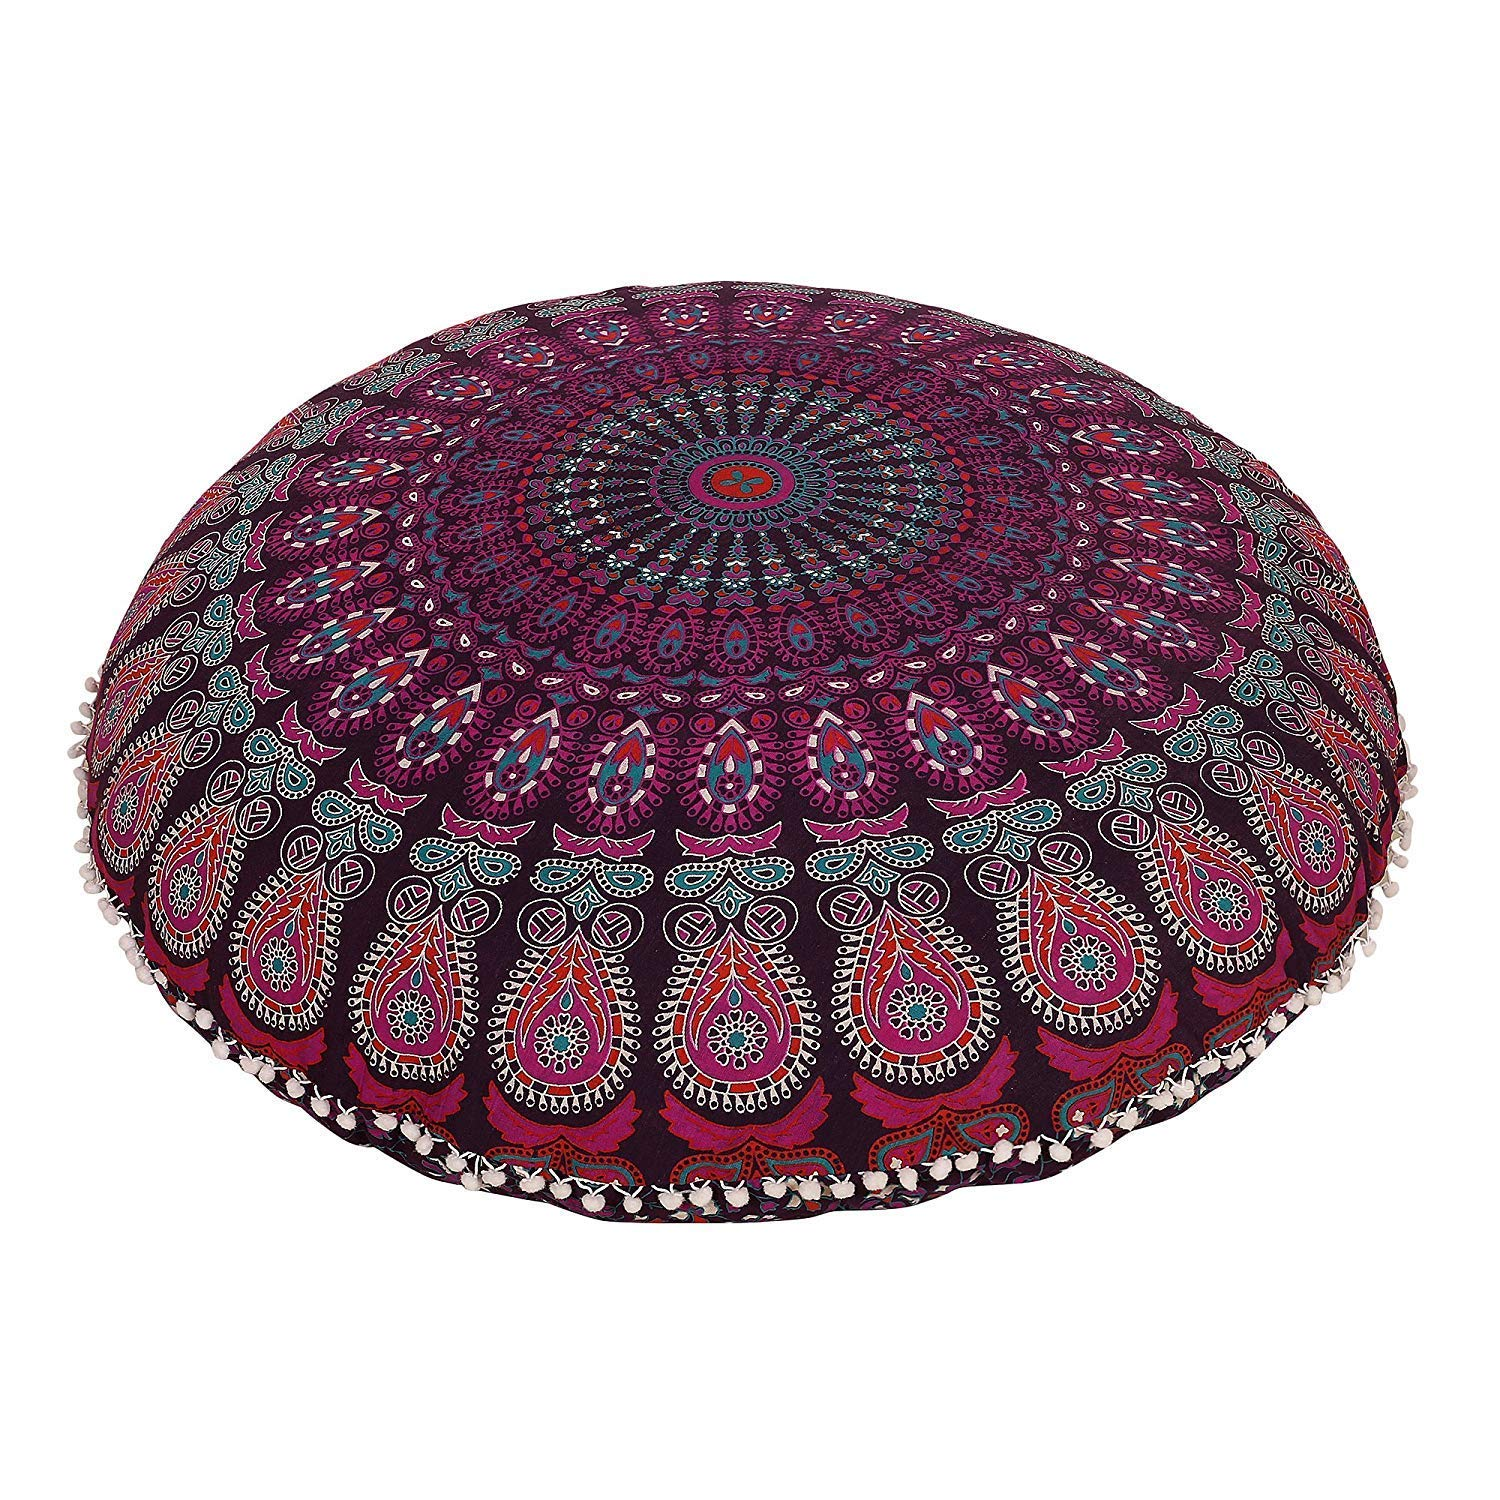 32'' Lavender Ombre Floor Pillow Meditation Bohemian Cushion Seating Throw Cover Hippie Decorative Boho Indian Large Ottoman Outdoor Home Decor Cases Round Sham Mandala Cotton Pouf (Lavender) by MY DREAM CARTS